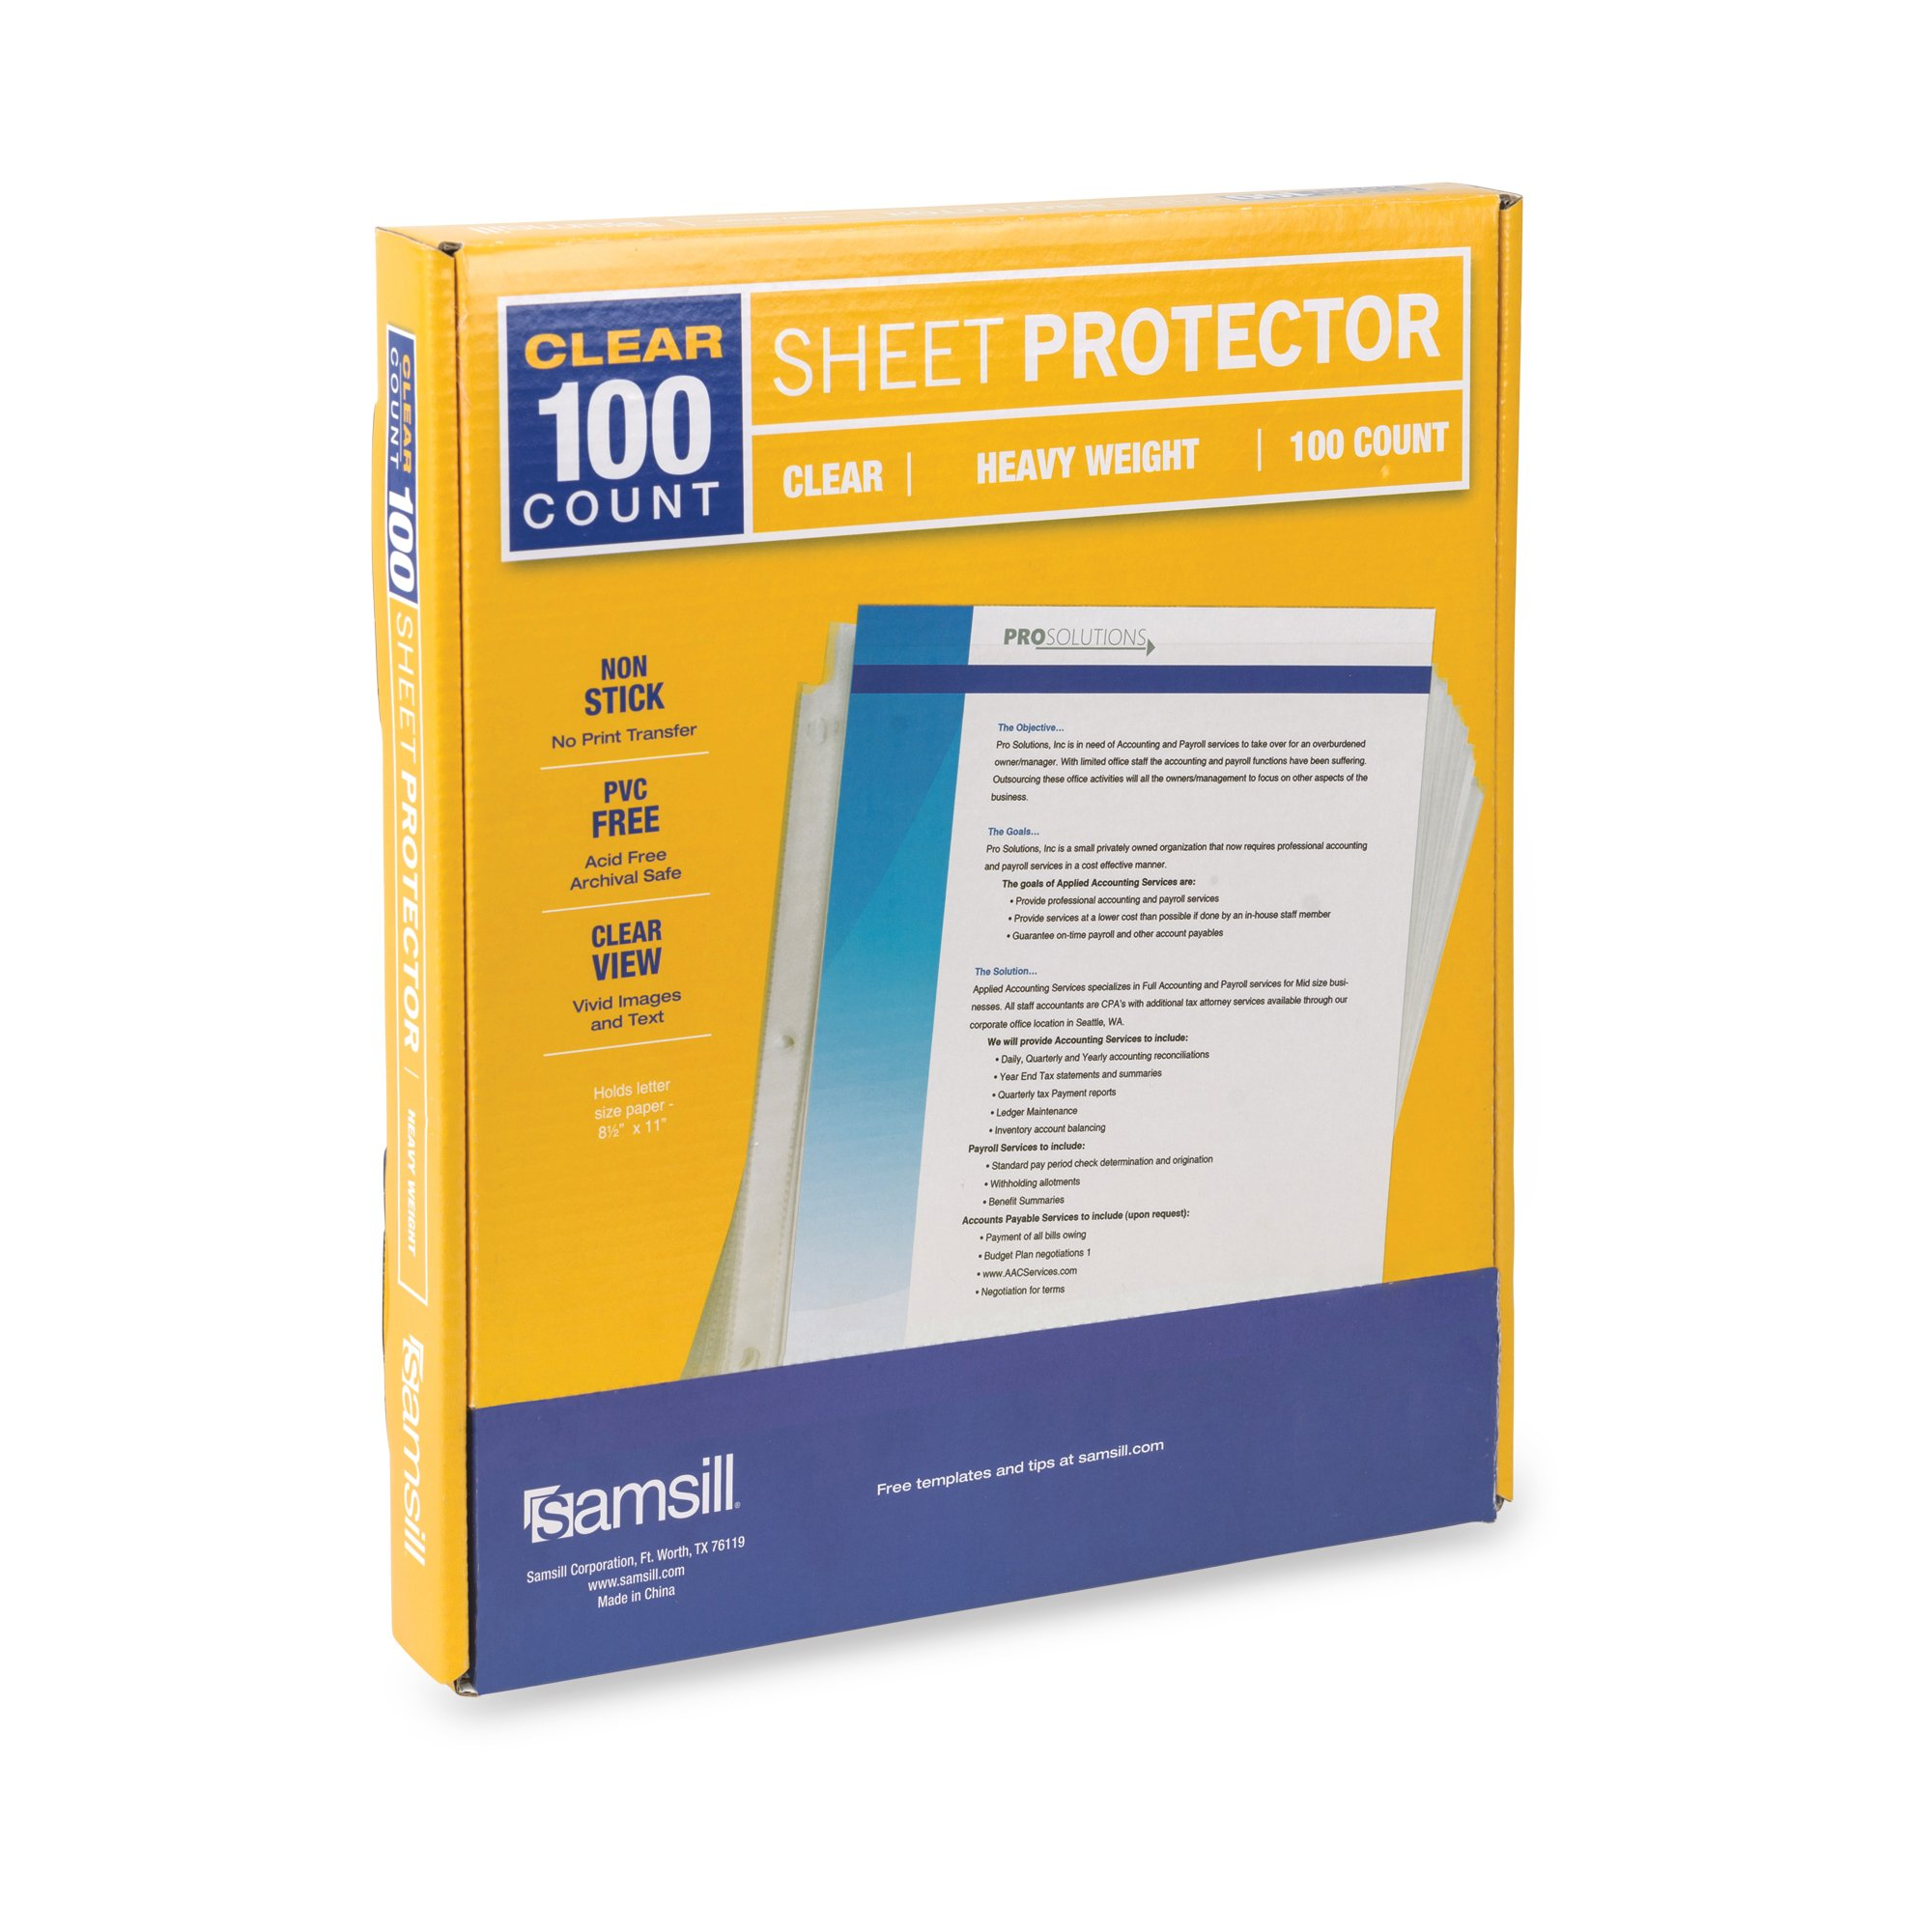 Samsill Heavyweight Clear Sheet Protectors, Box of 100, Acid Free & Archival Safe, 8.5 x 11 Inches, Top Load